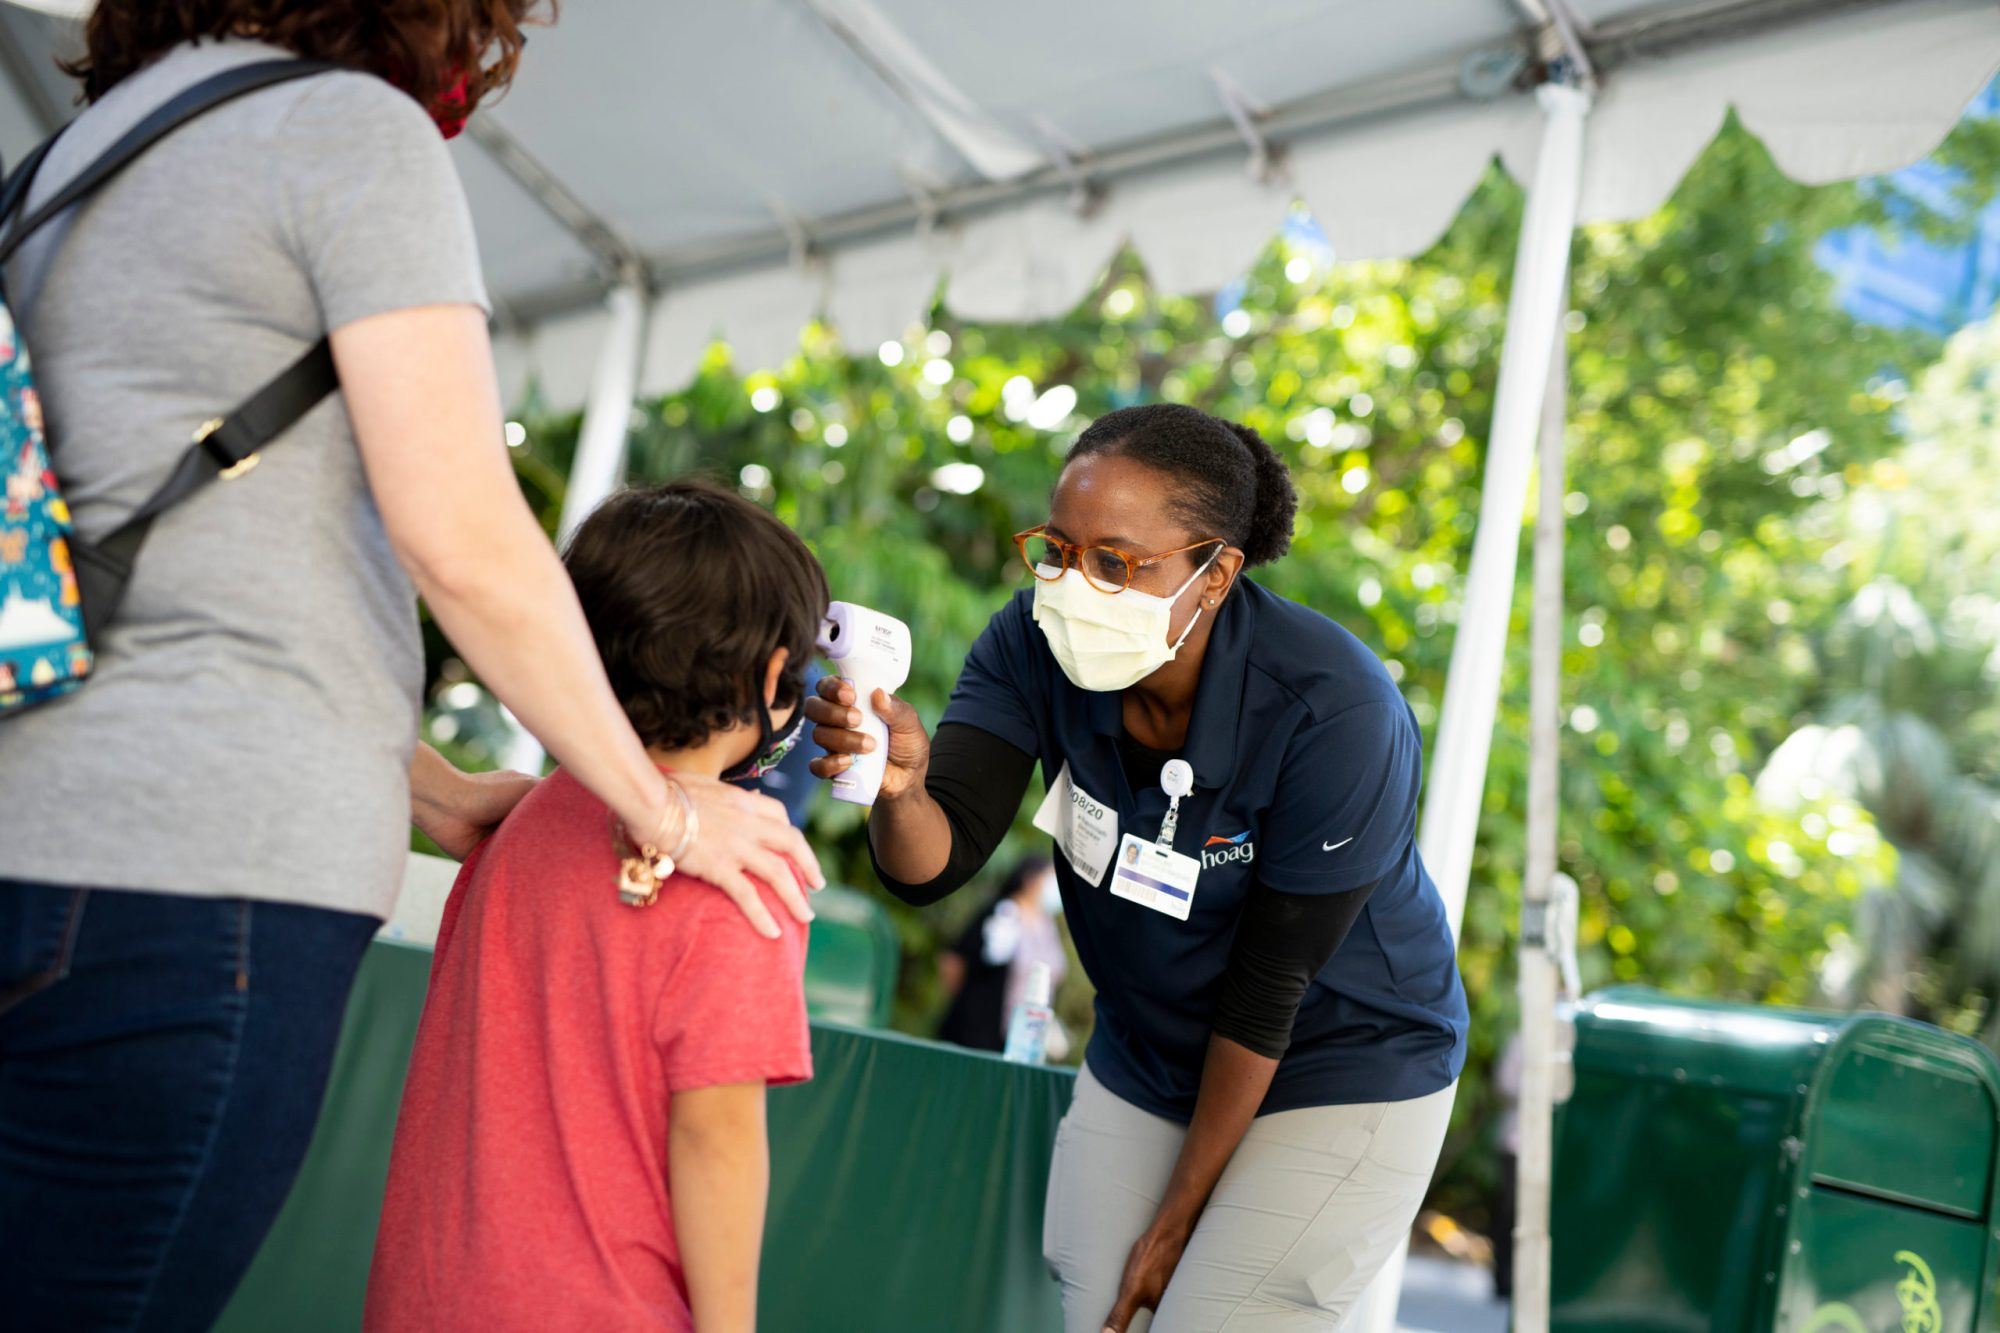 A child has his temperature taken in Downtown Disney on July 9, 2020, in Anaheim, Orange County. (Derek Lee/Disneyland Resort via Getty Images)